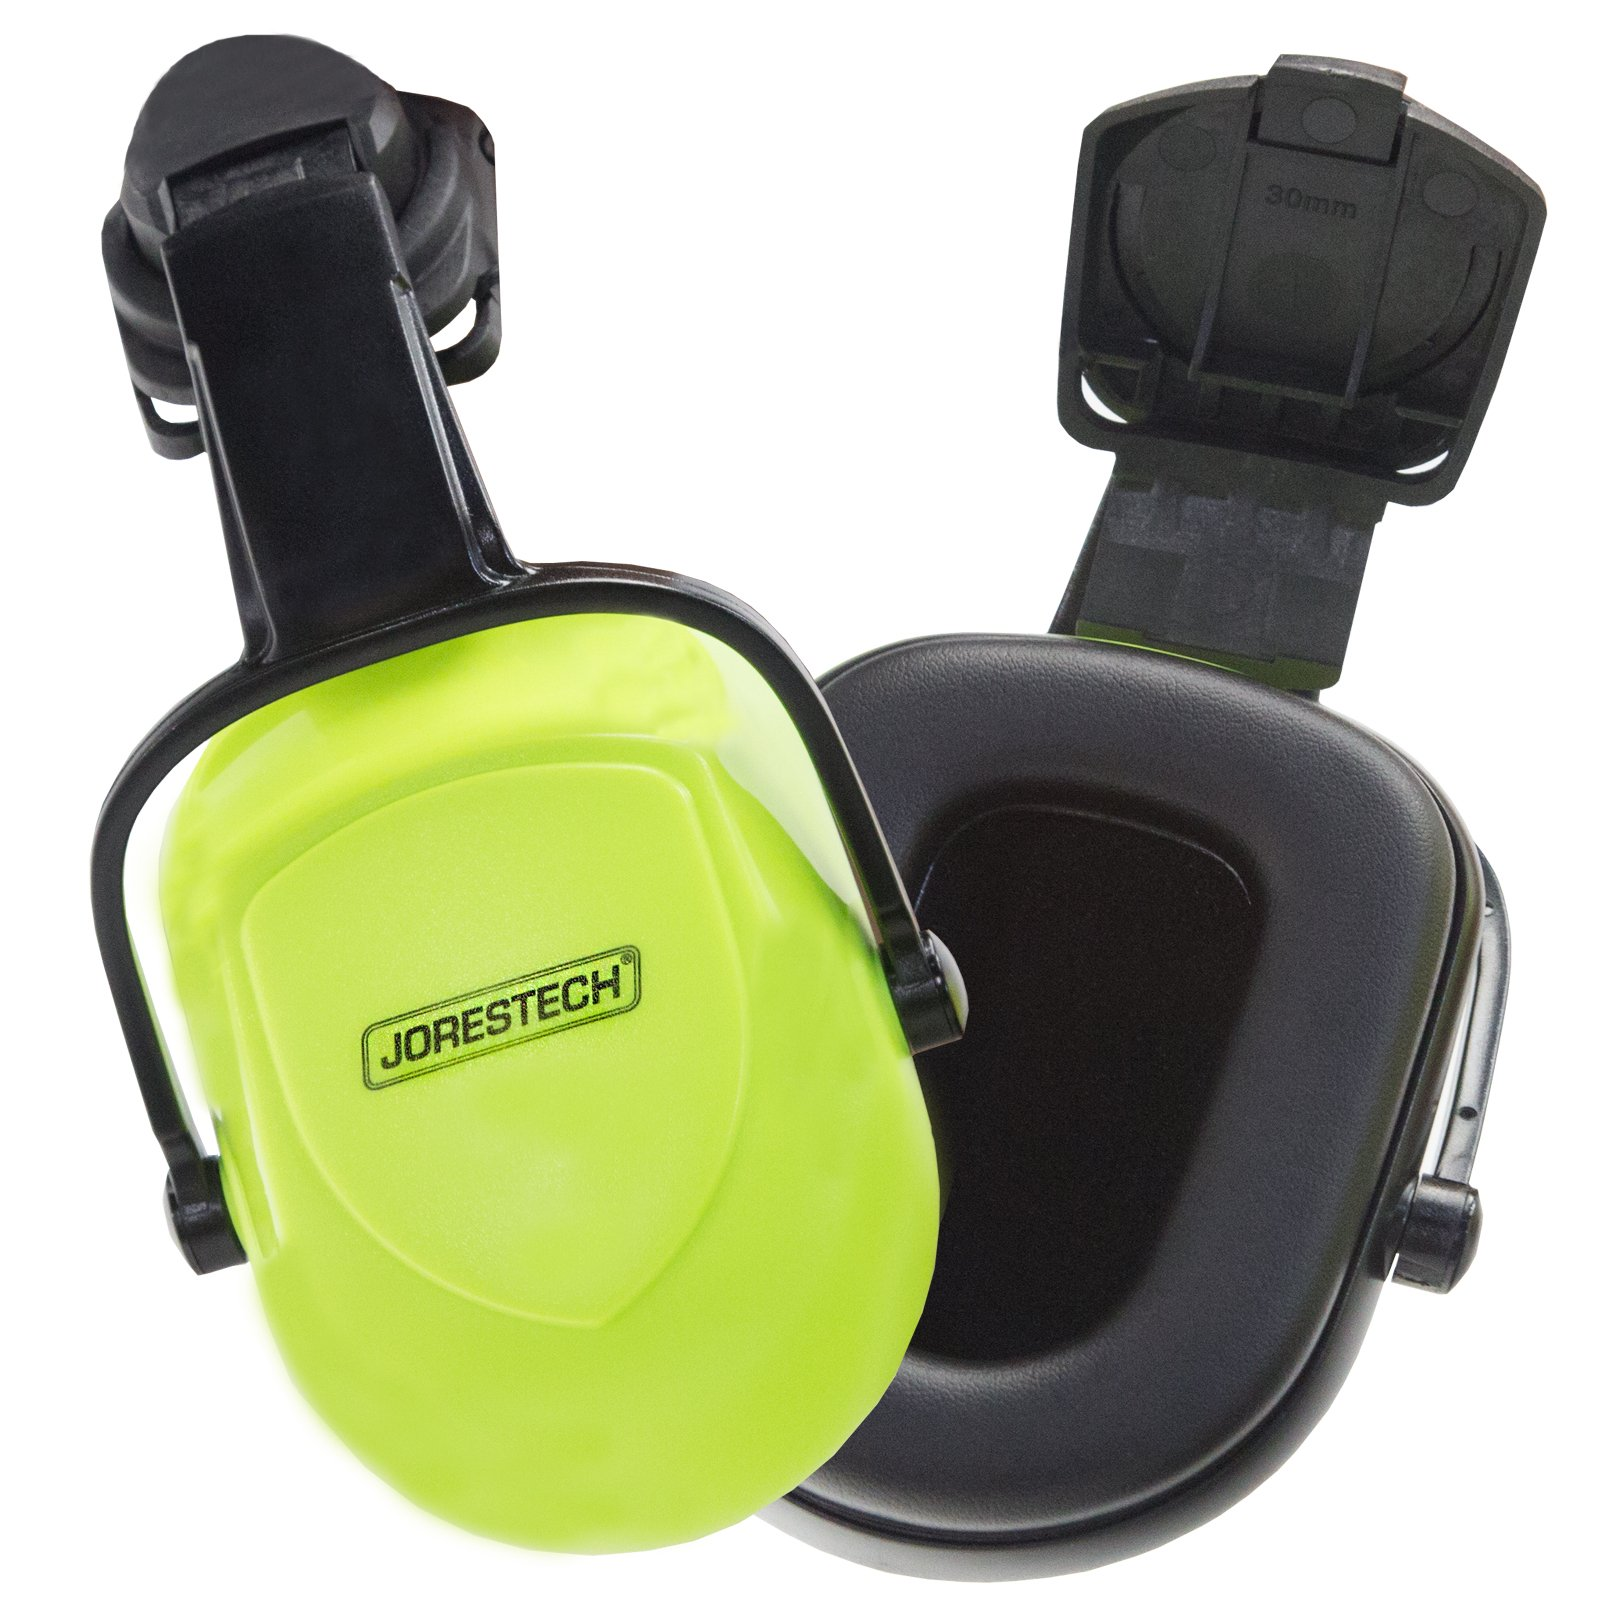 JORESTECH High Performance Noise Cancelling Hard Hat Ear Muffs With Universal Mount For Slotted Helmets